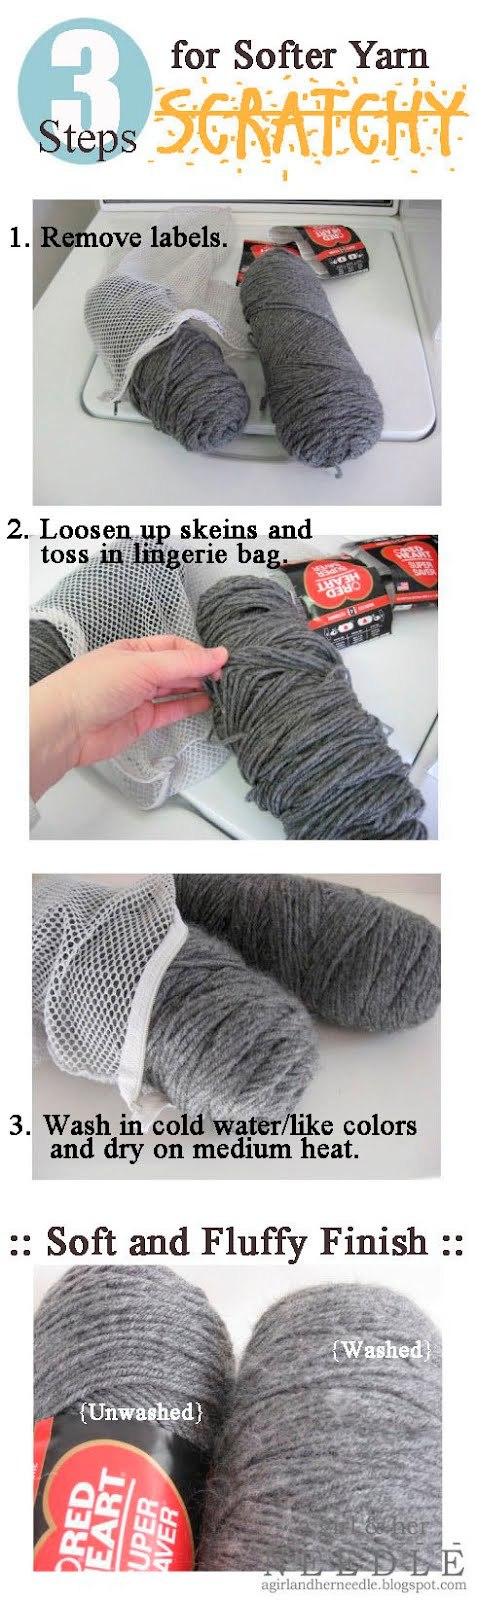 crochetadventures:  glitzknitsboutique:  **Keep in mind, this will only work with acrylic yarns**  I'm so trying this  This is just AWESOME!!